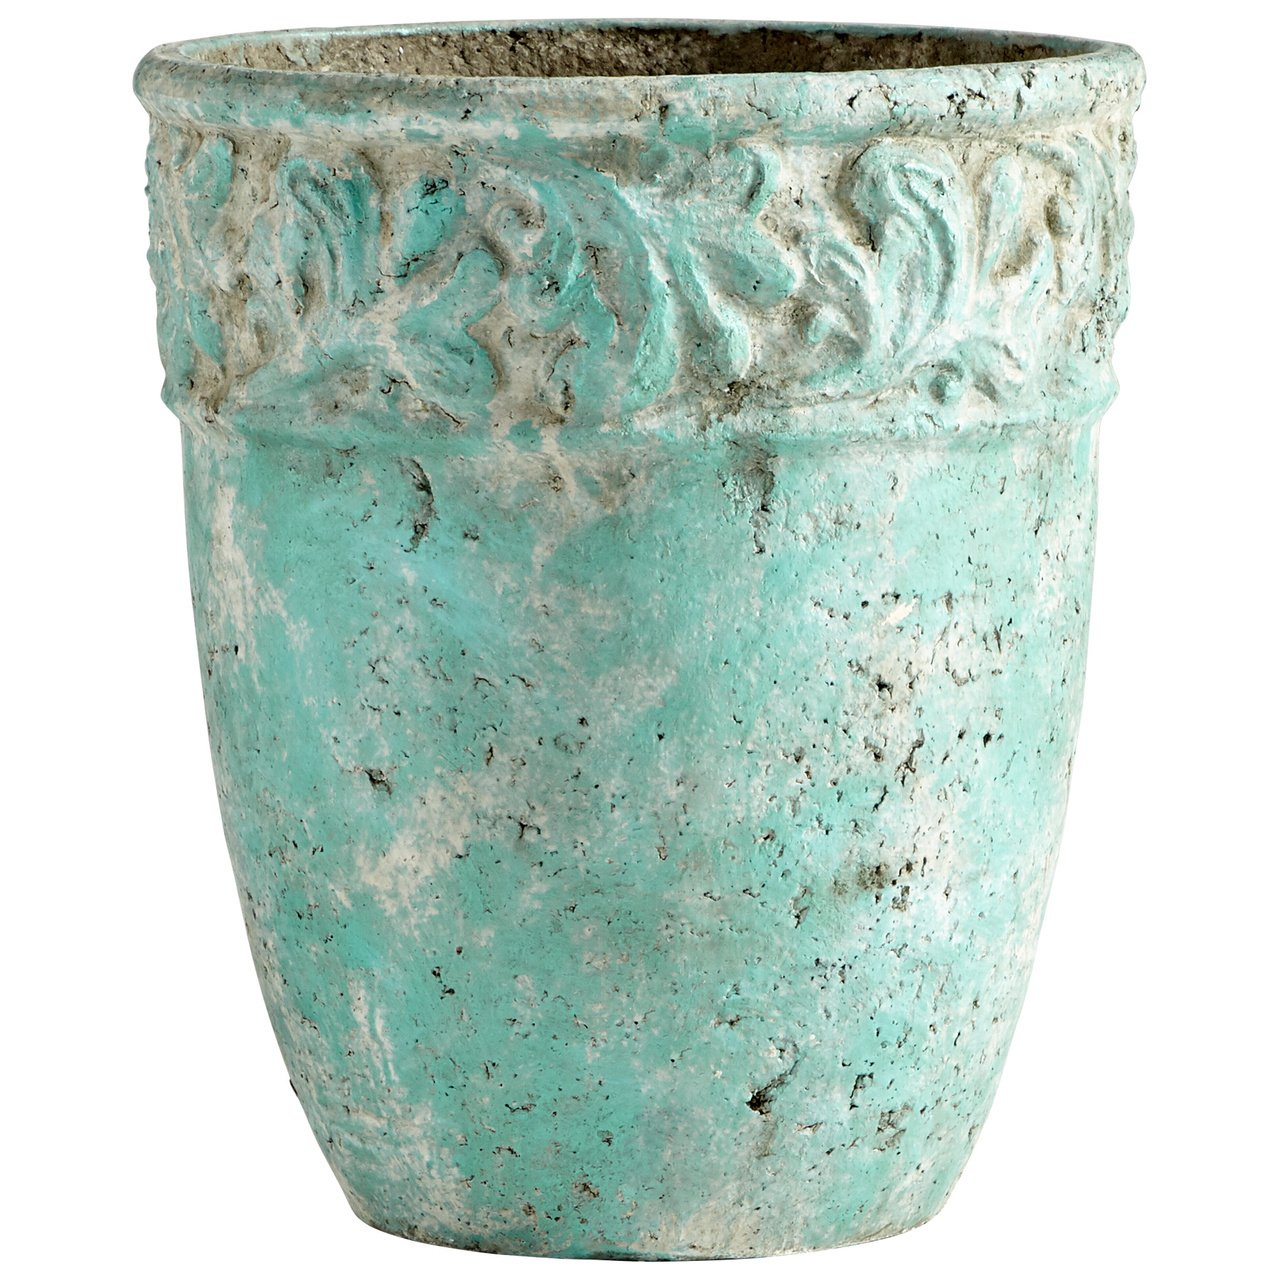 Cyan Design 09606 Rome Antique Green Planter, Small by Cyan Design